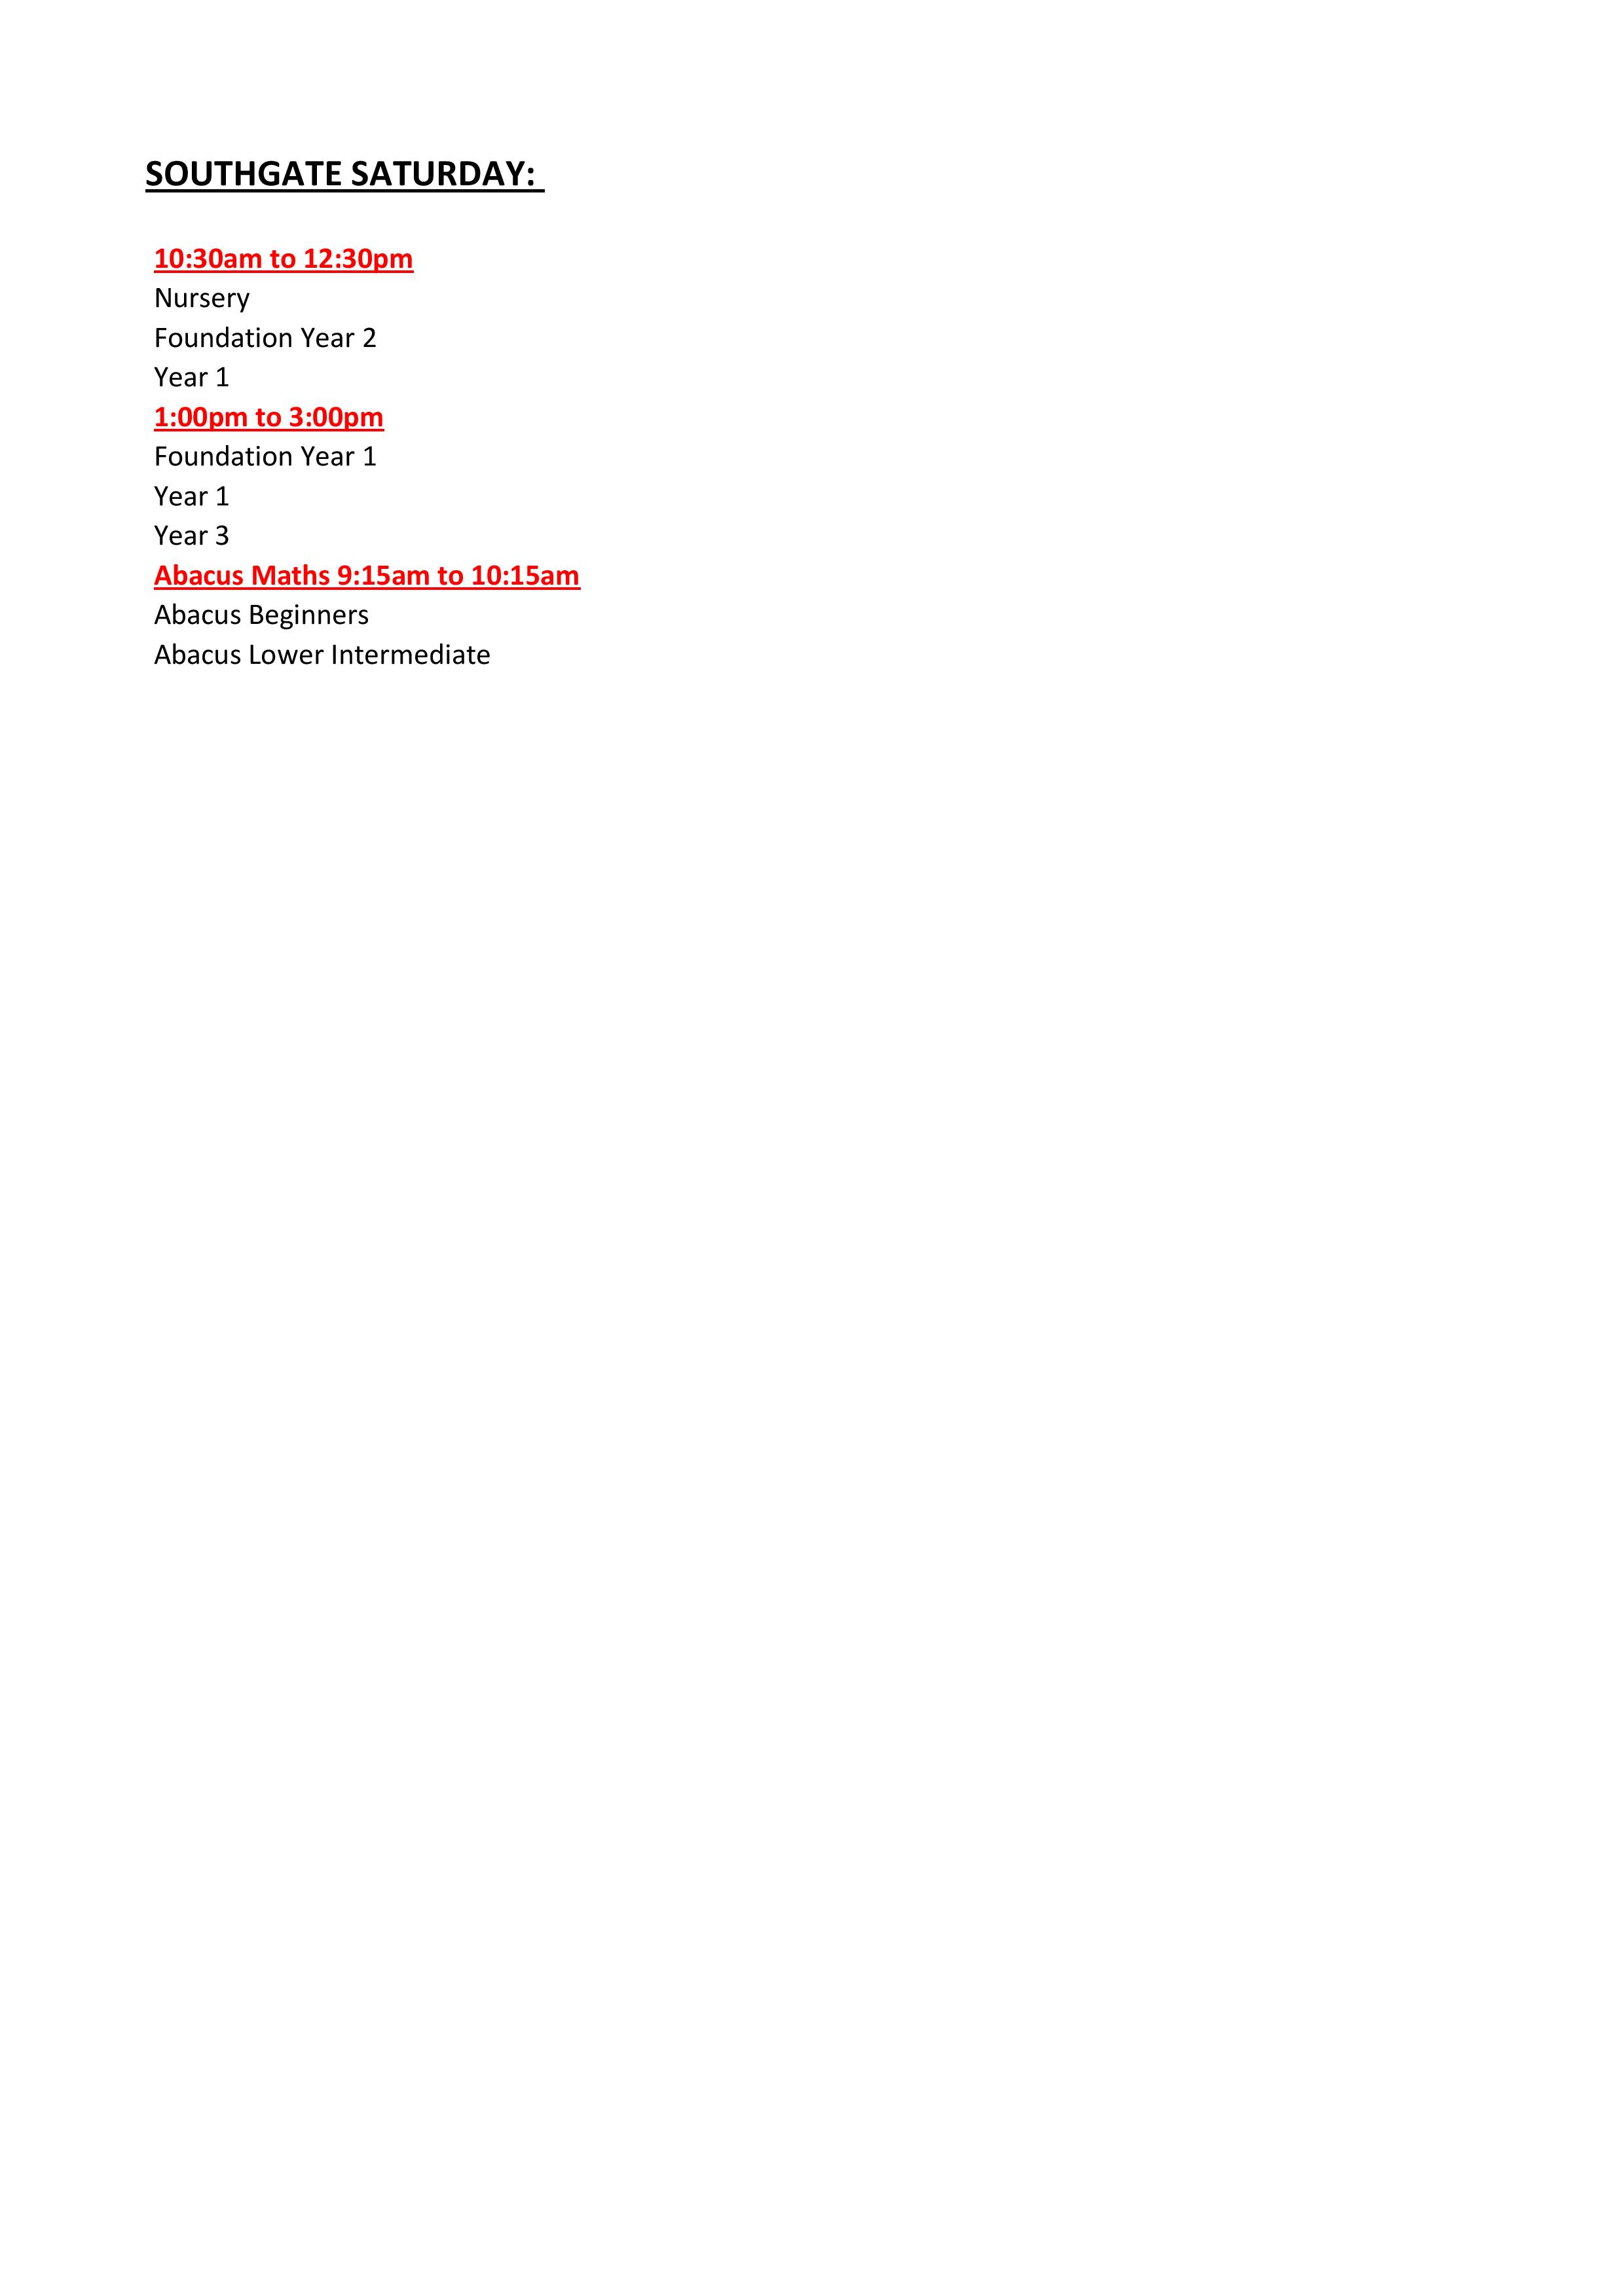 Website Timetable SG-page-001